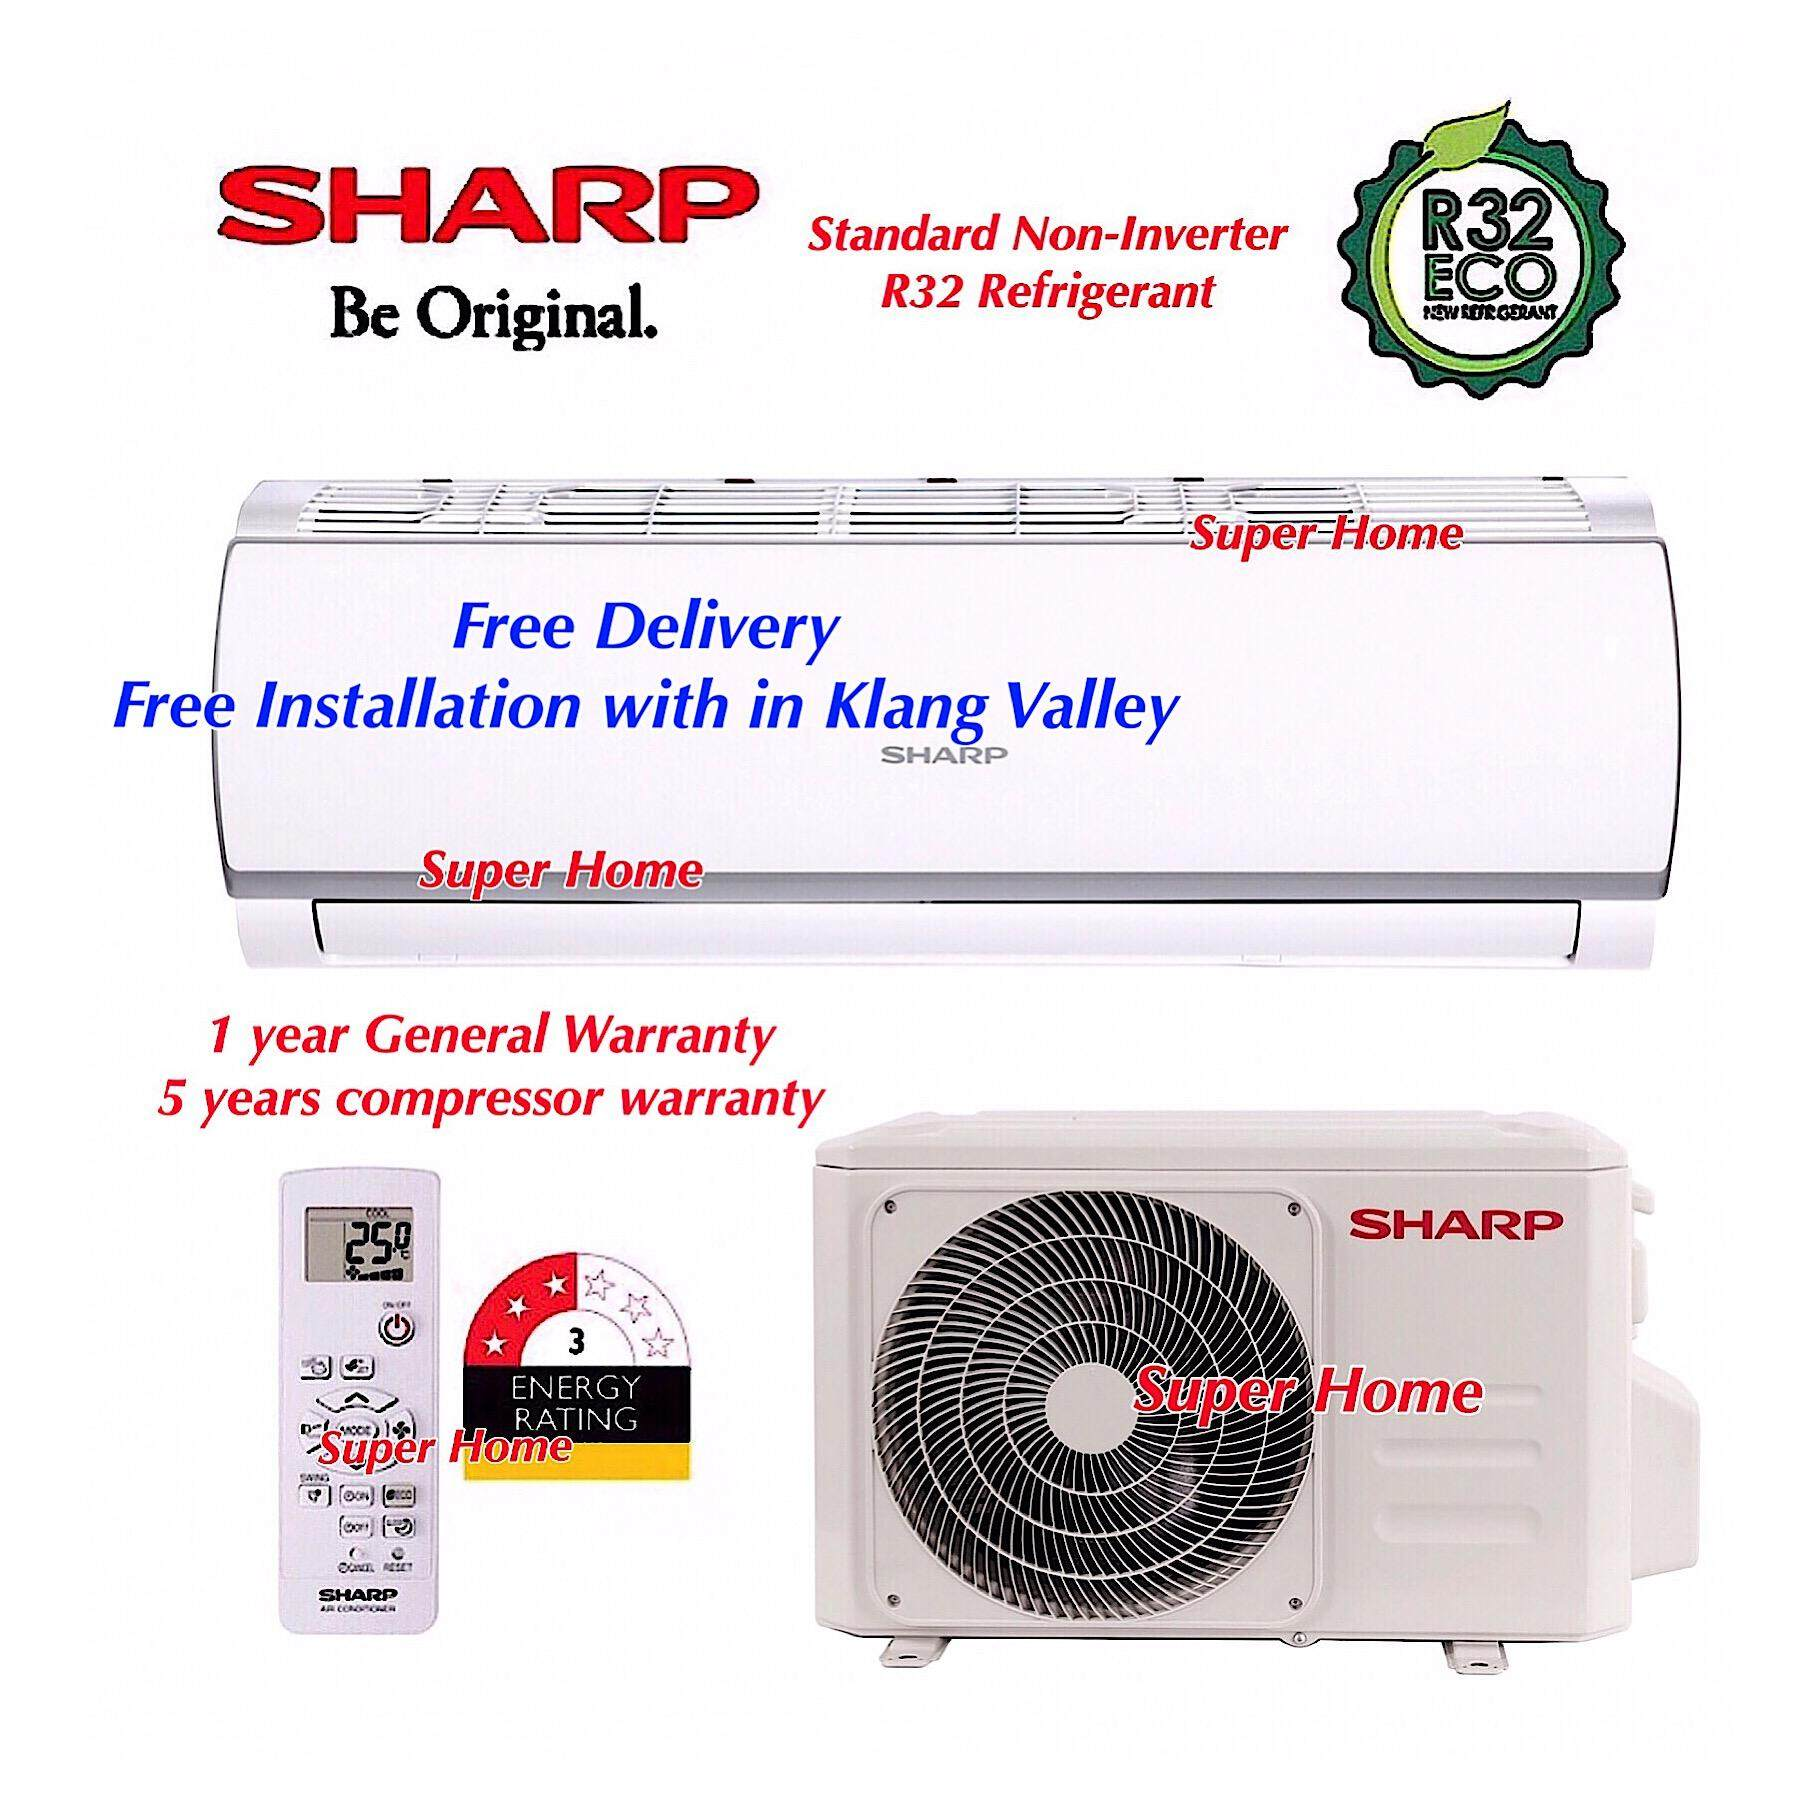 Sharp R32 1.5hp eco Non-Inverter Split Air-Conditioner AHA12WCD & AUA12WCD - R32 + Free Delivery + Free Installation Services (Only with in Klang Valley)